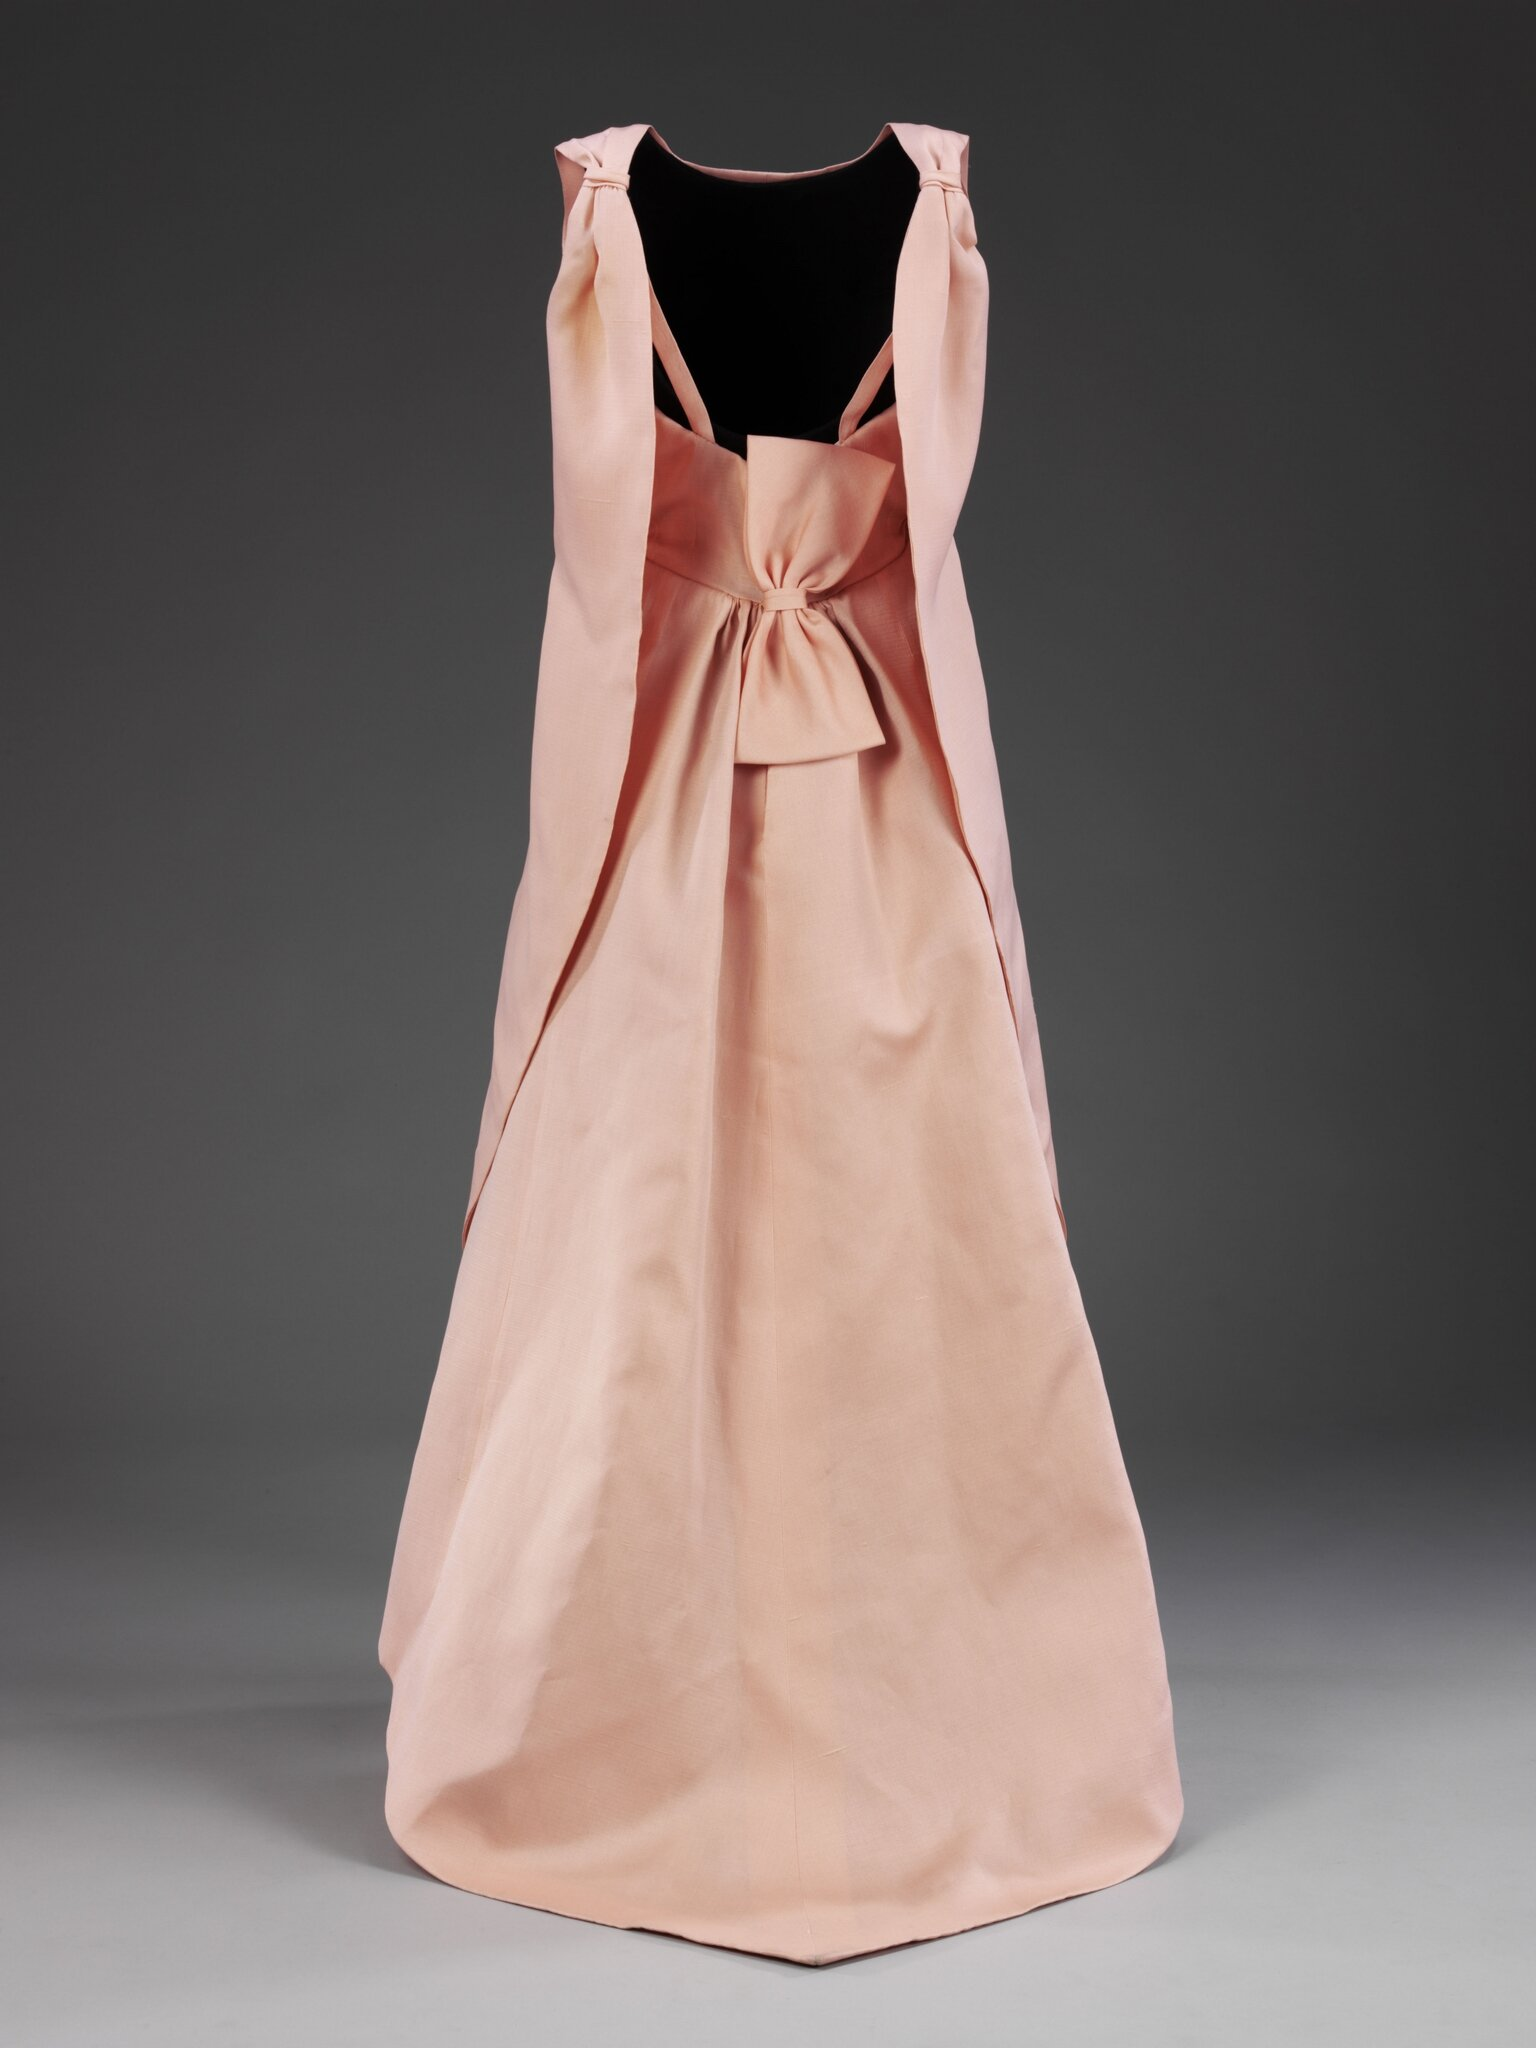 La_Tulipe_evening_dress_gazar_Balenciaga_for_EISA_Spain_1965__Victoria_and_Albert_Museum_London